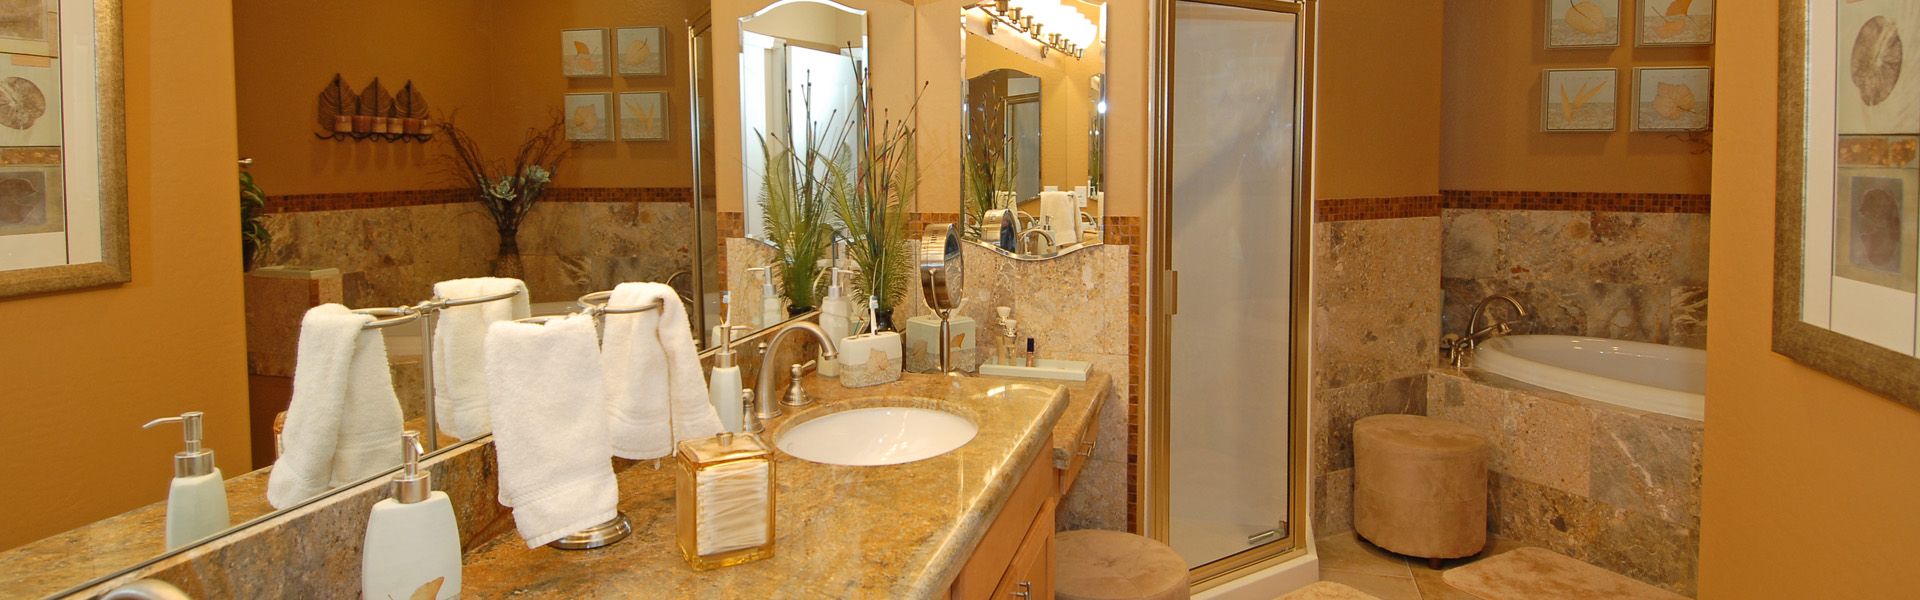 Luxury Condo Master Bath - After